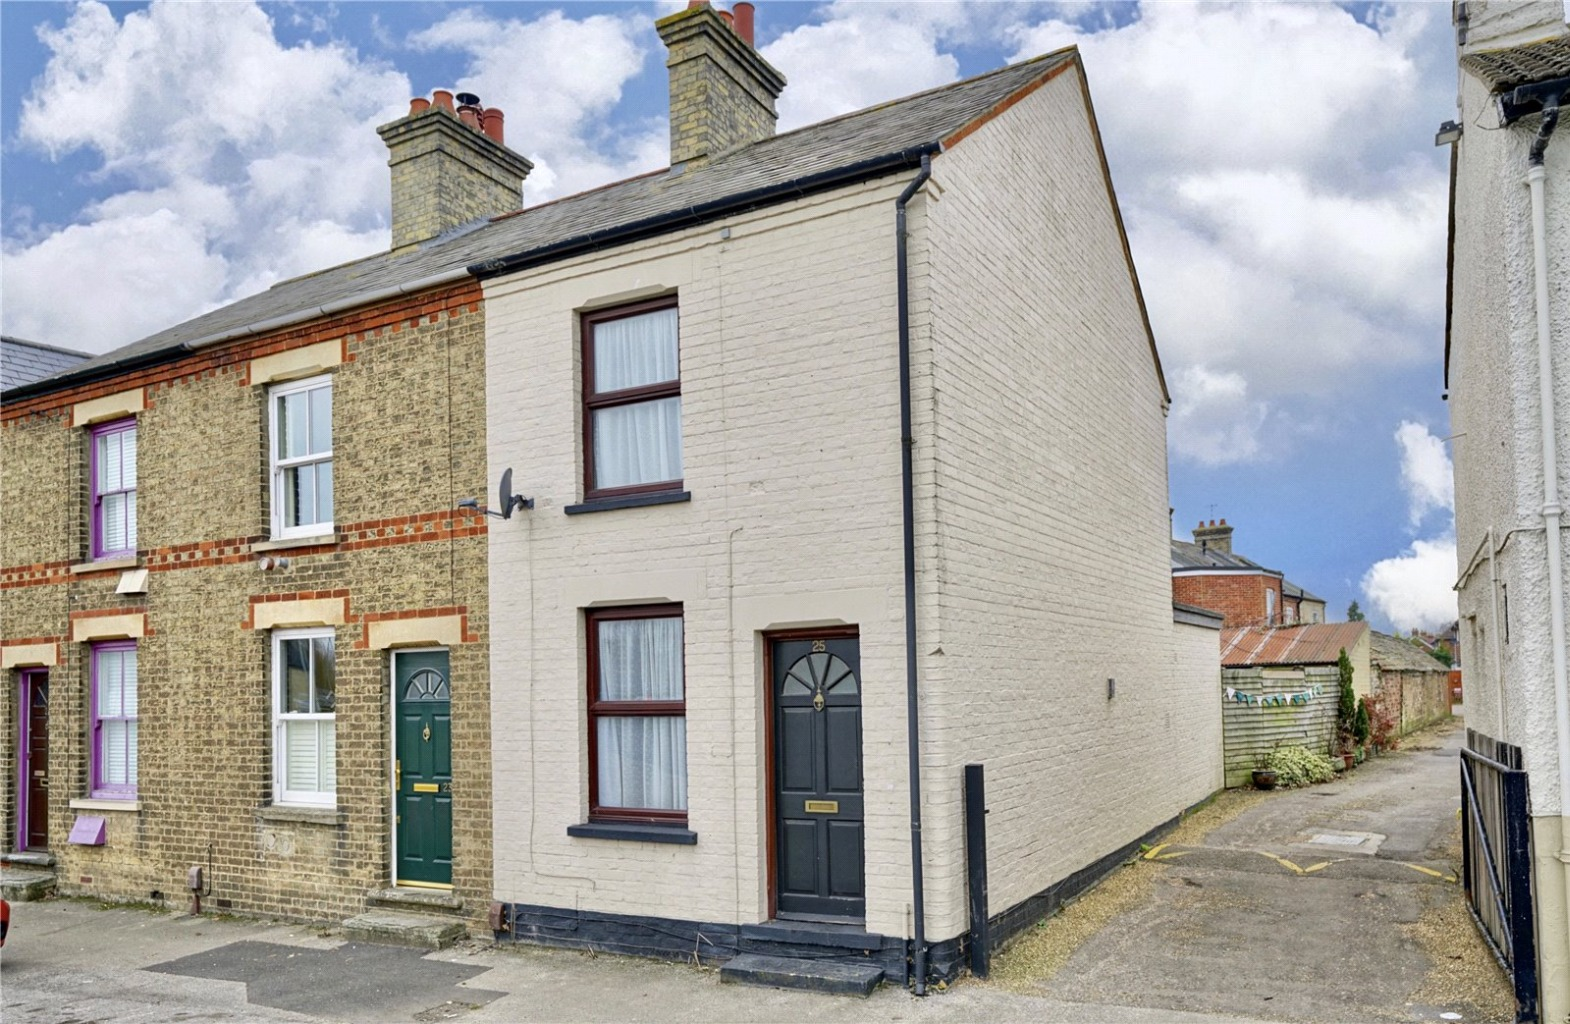 2 bed end of terrace house for sale in Crosshall Road, St. Neots, PE19